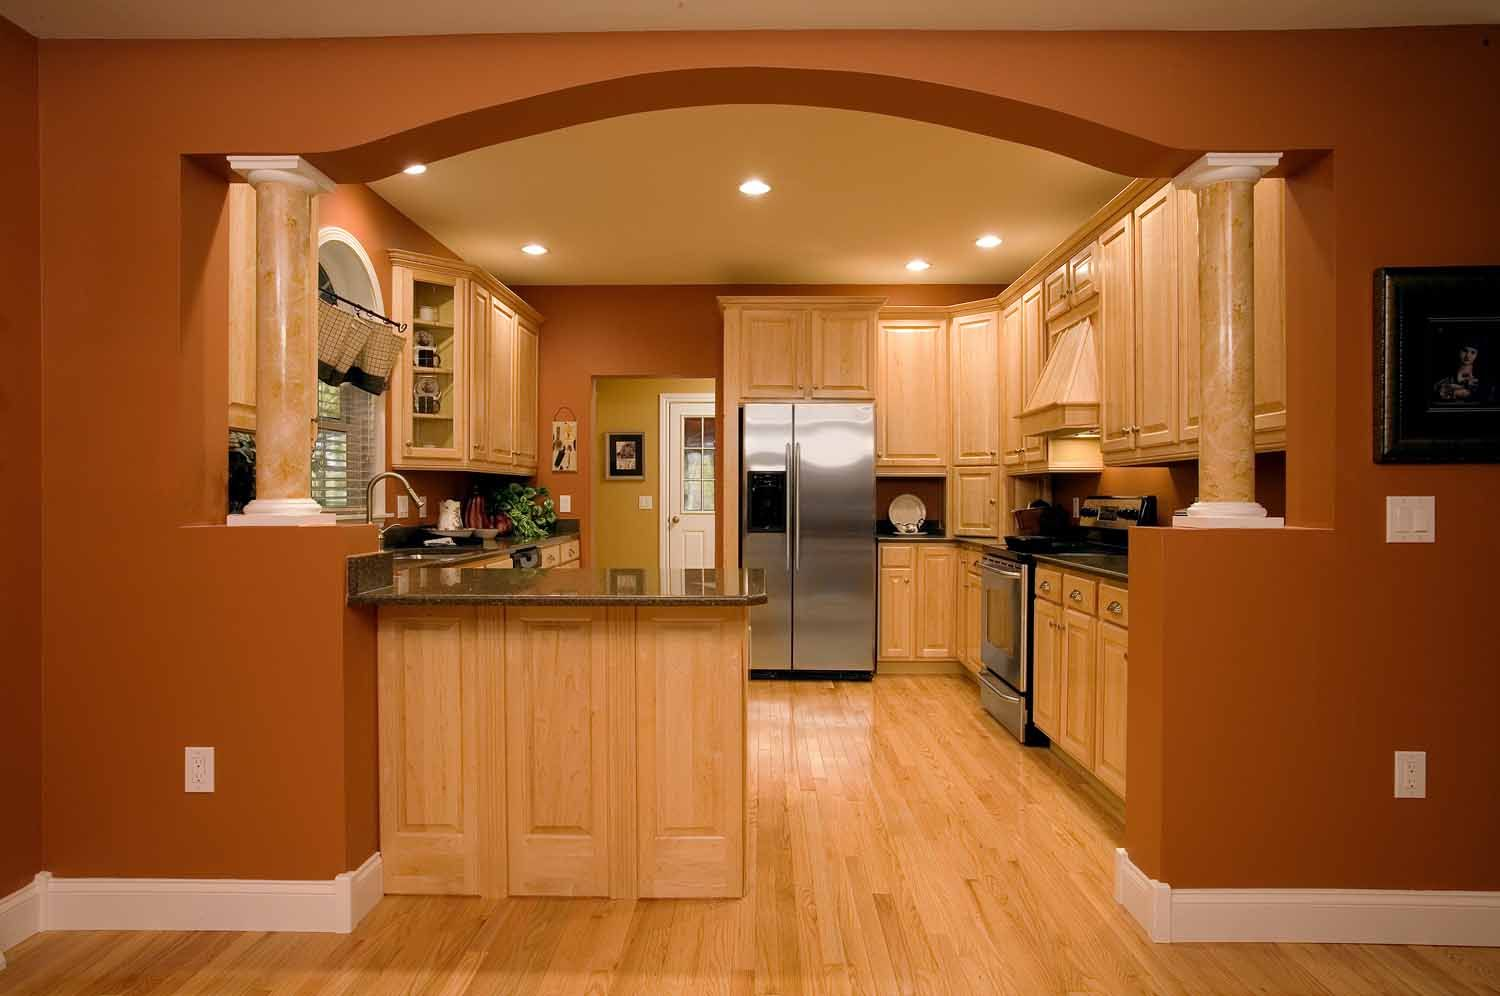 Half Walls With 6 Round Columns Elliptical Arch Kitchen Www Ritz Craft Com Kitchen Design Home Decor Kitchen Design Help